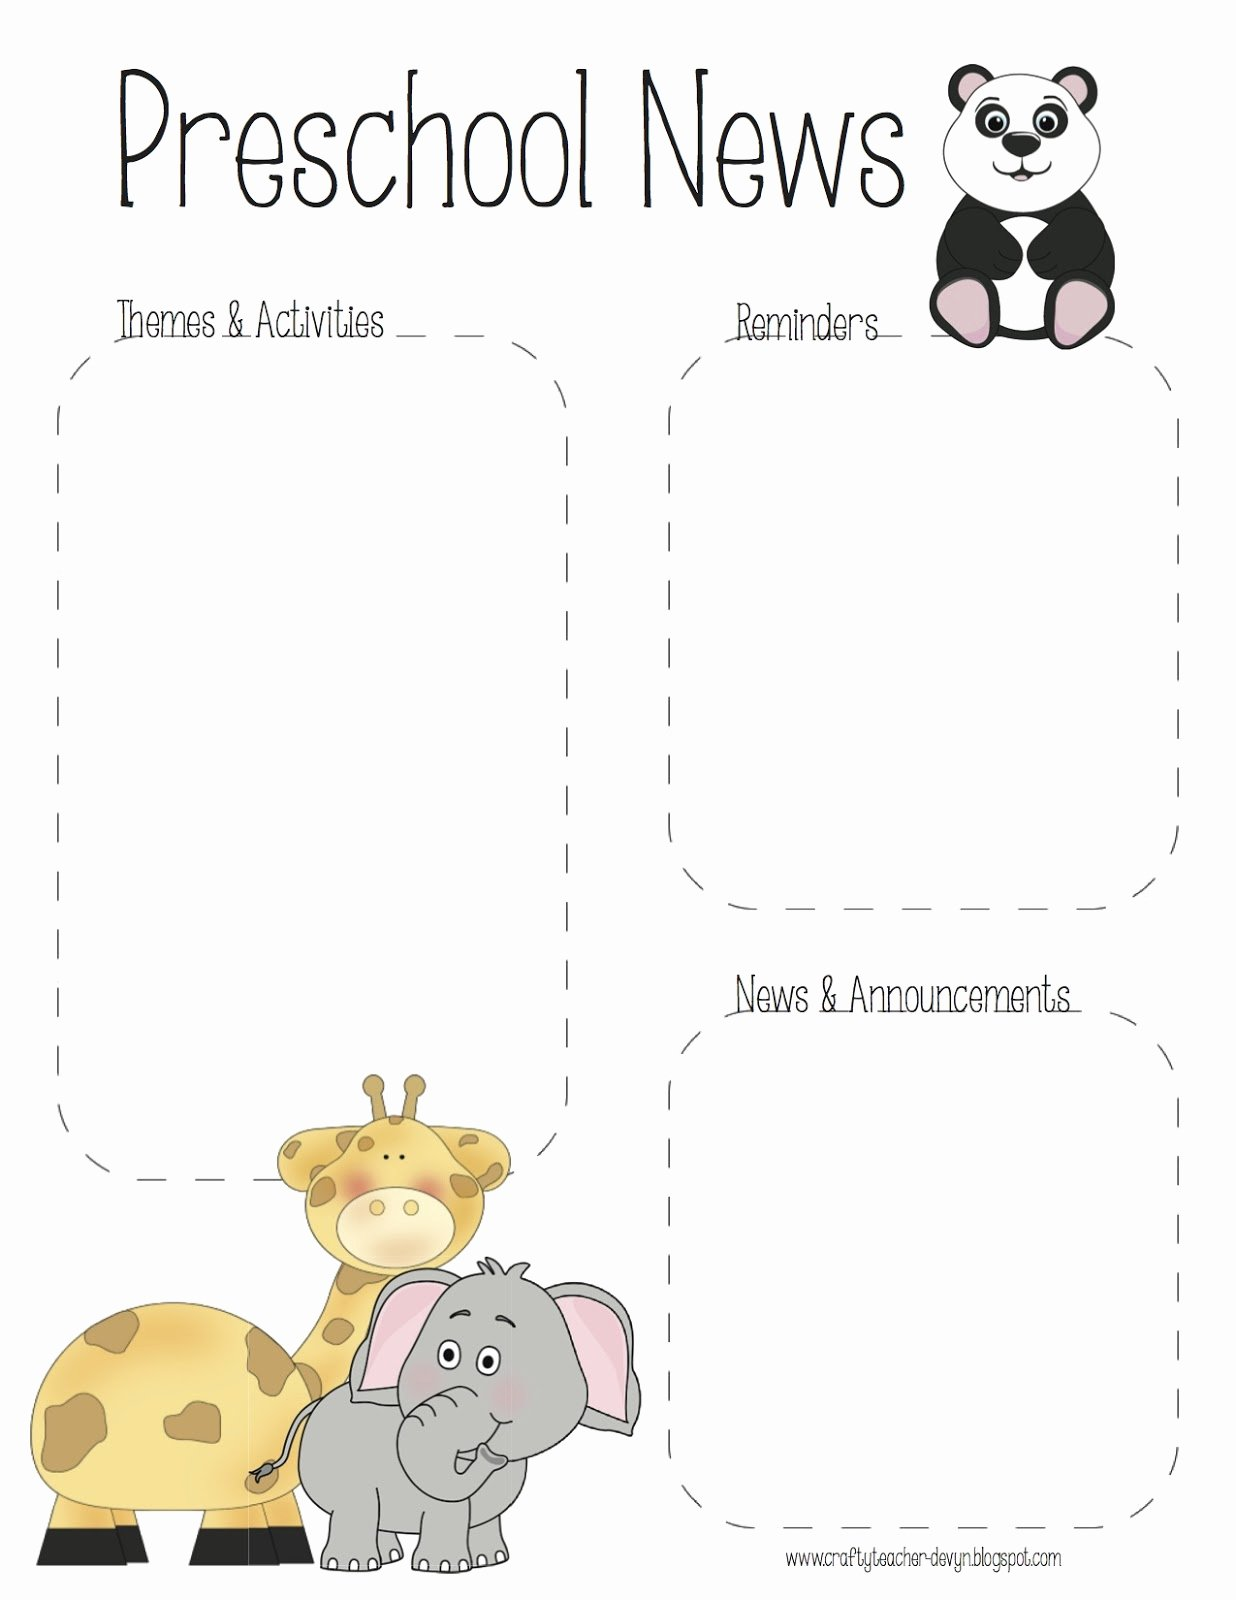 Free Newsletter Templates for Preschool New the Crafty Teacher Preschool Zoo Newsletter Template